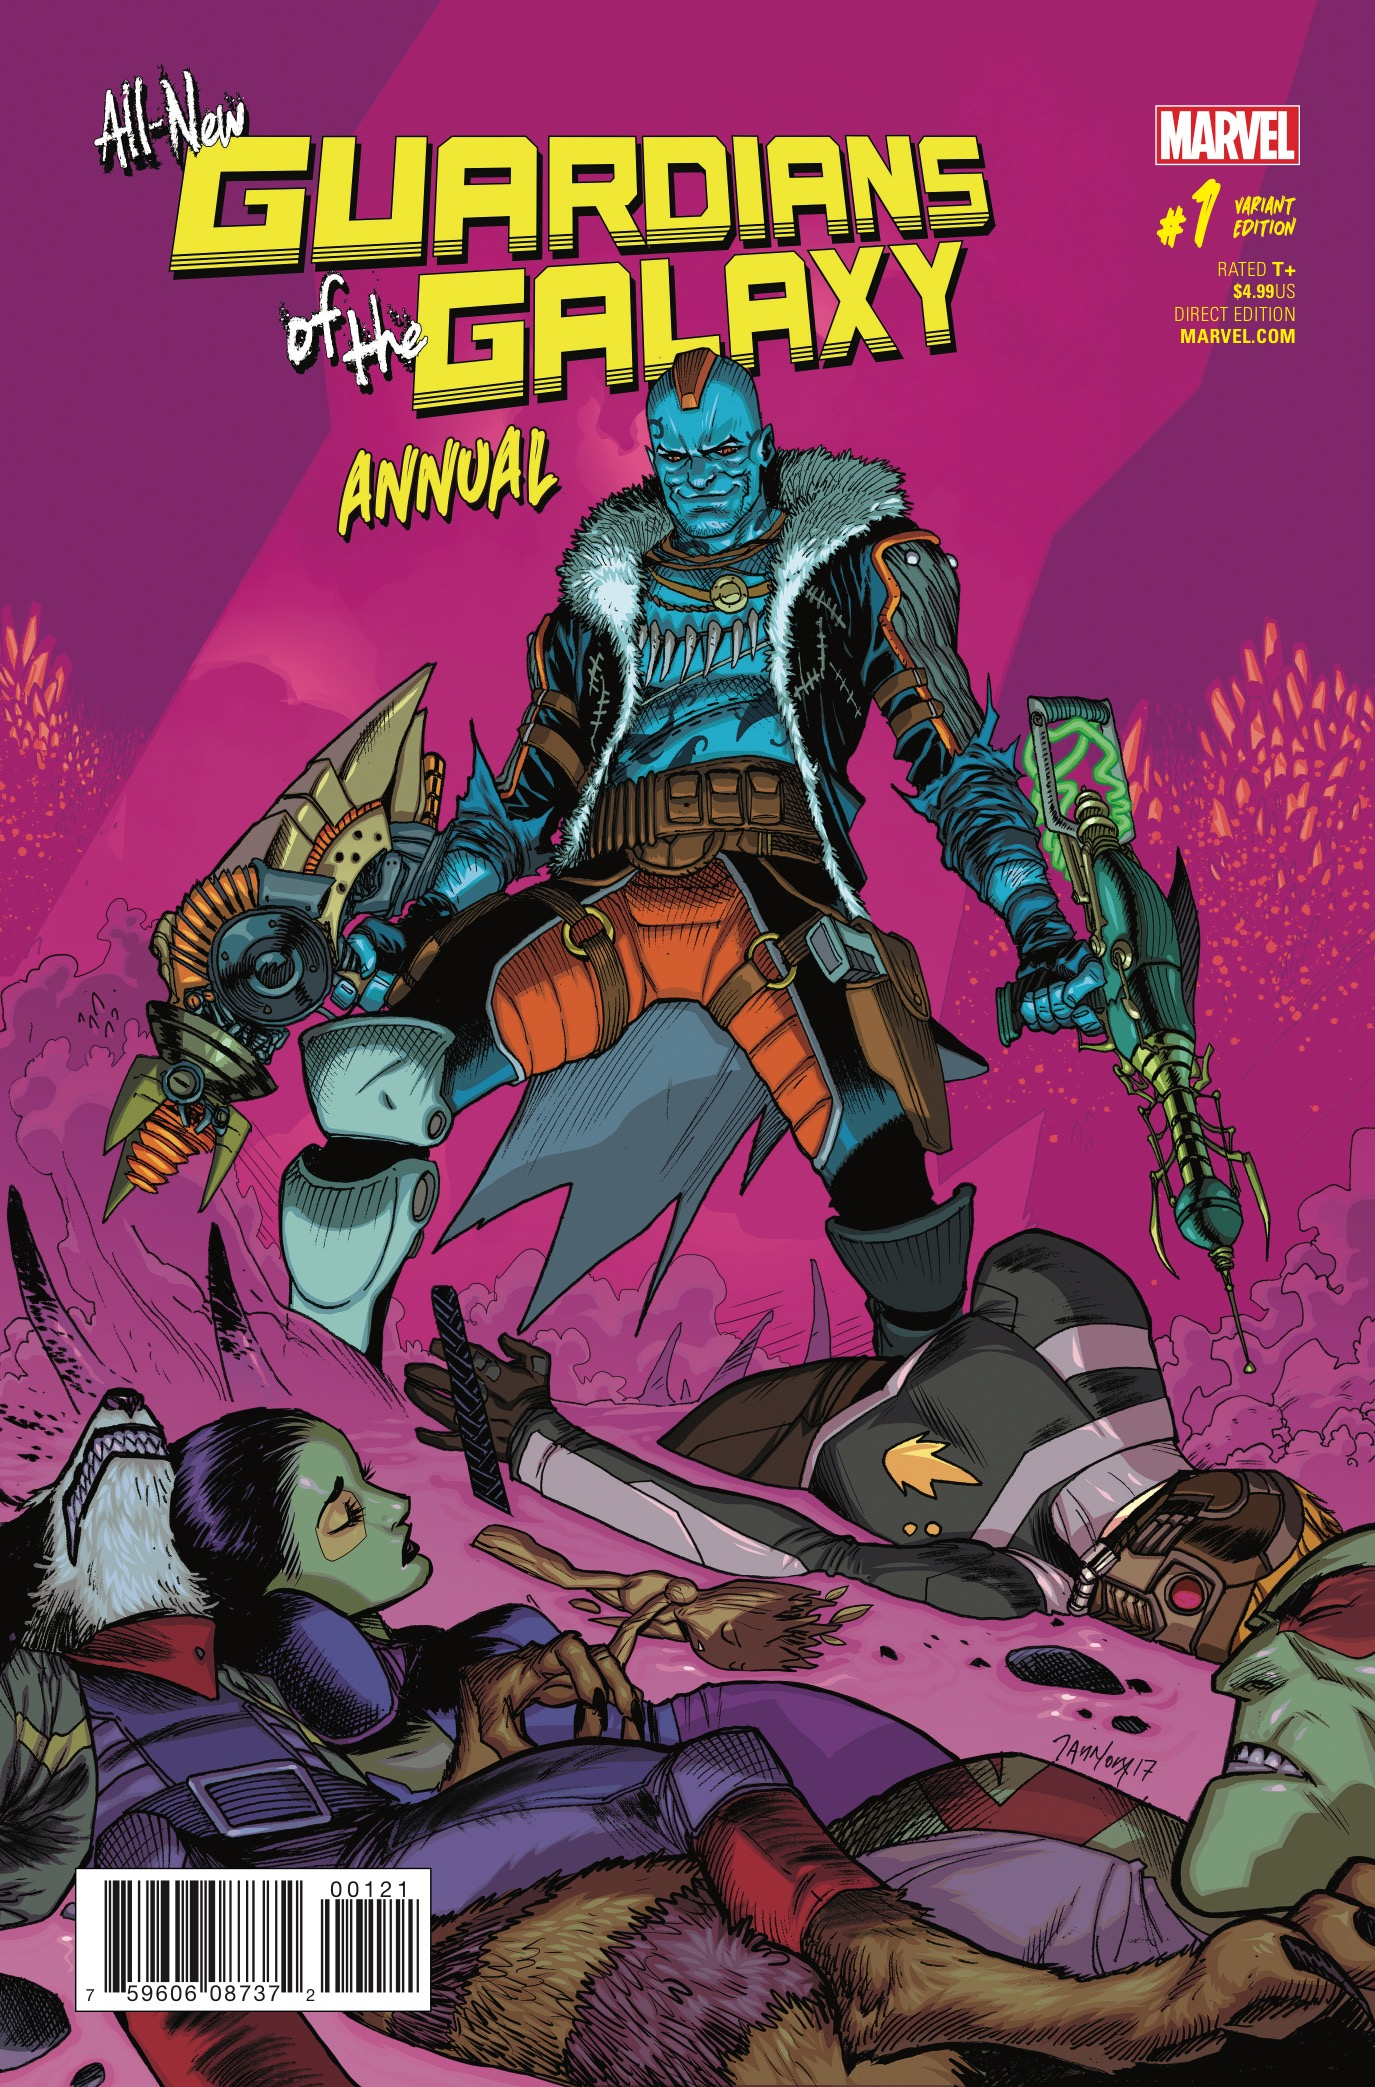 All-New Guardians of the Galaxy Annual #1 Review